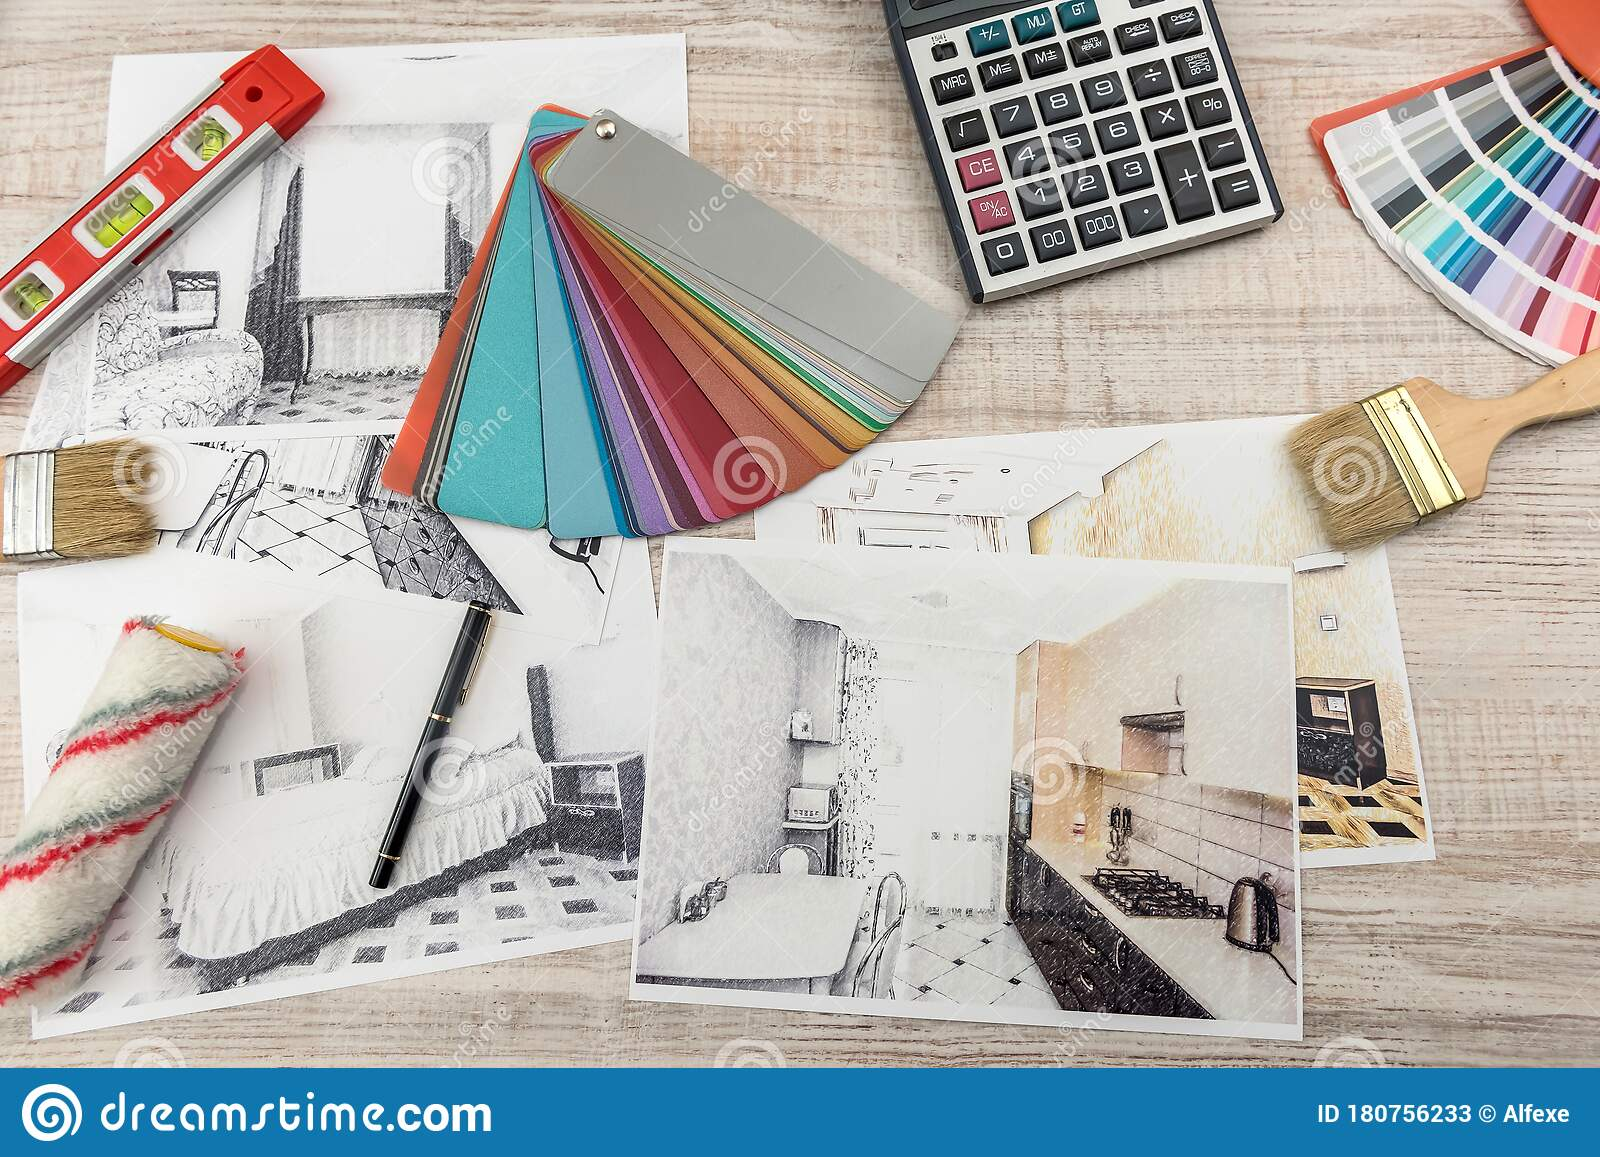 modern drawing pencil sketch of a room interior design projects concept stock image image of color decoration 180756233